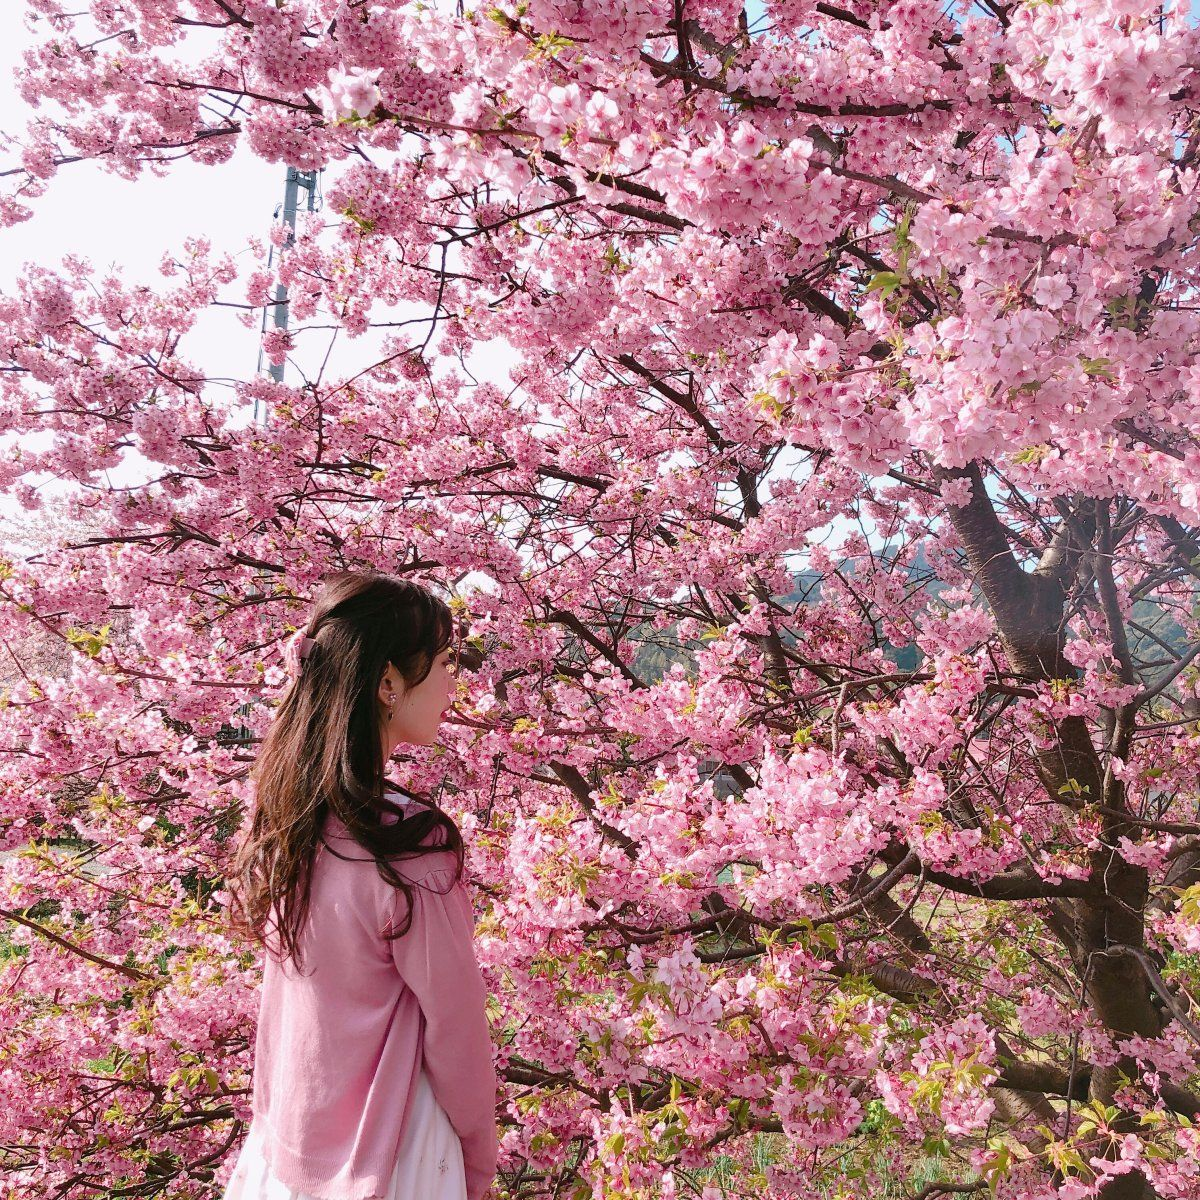 Cherry Blossoms In Japan 2020 Forecast The Dates Top 10 Best Places To See Cherry Blossoms In Japan Living Nomads Travel Tips Guides News Informat